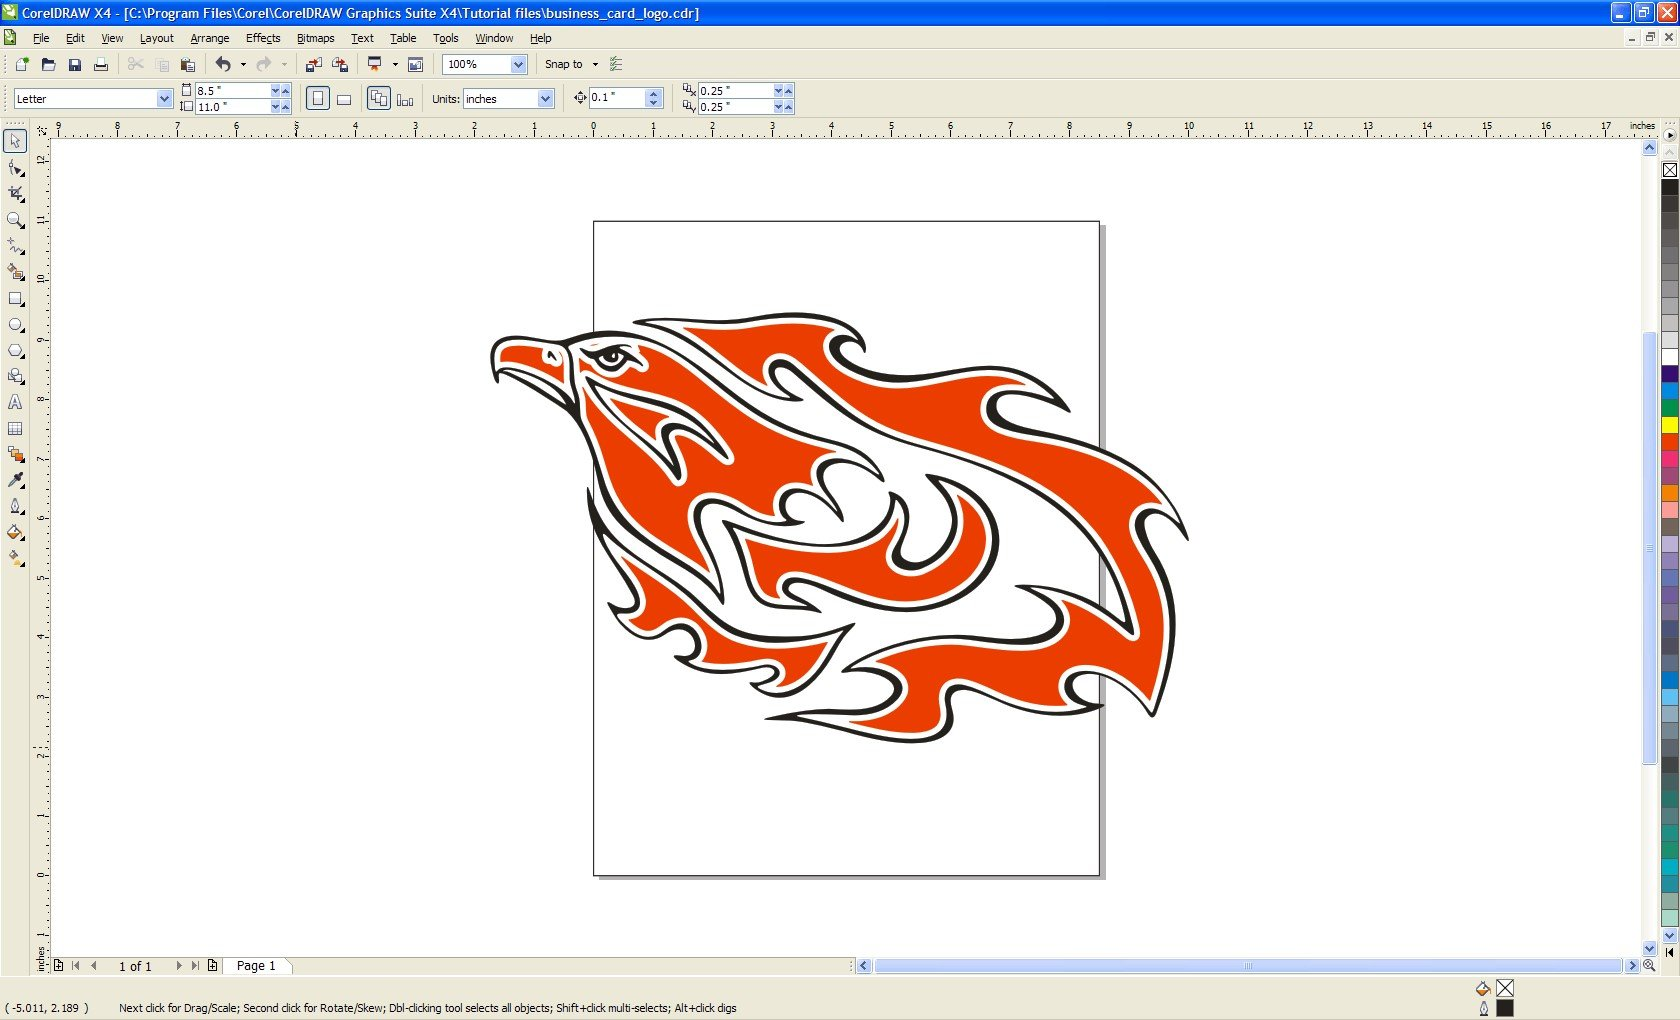 Corel draw version compatible with windows 10 - Tags